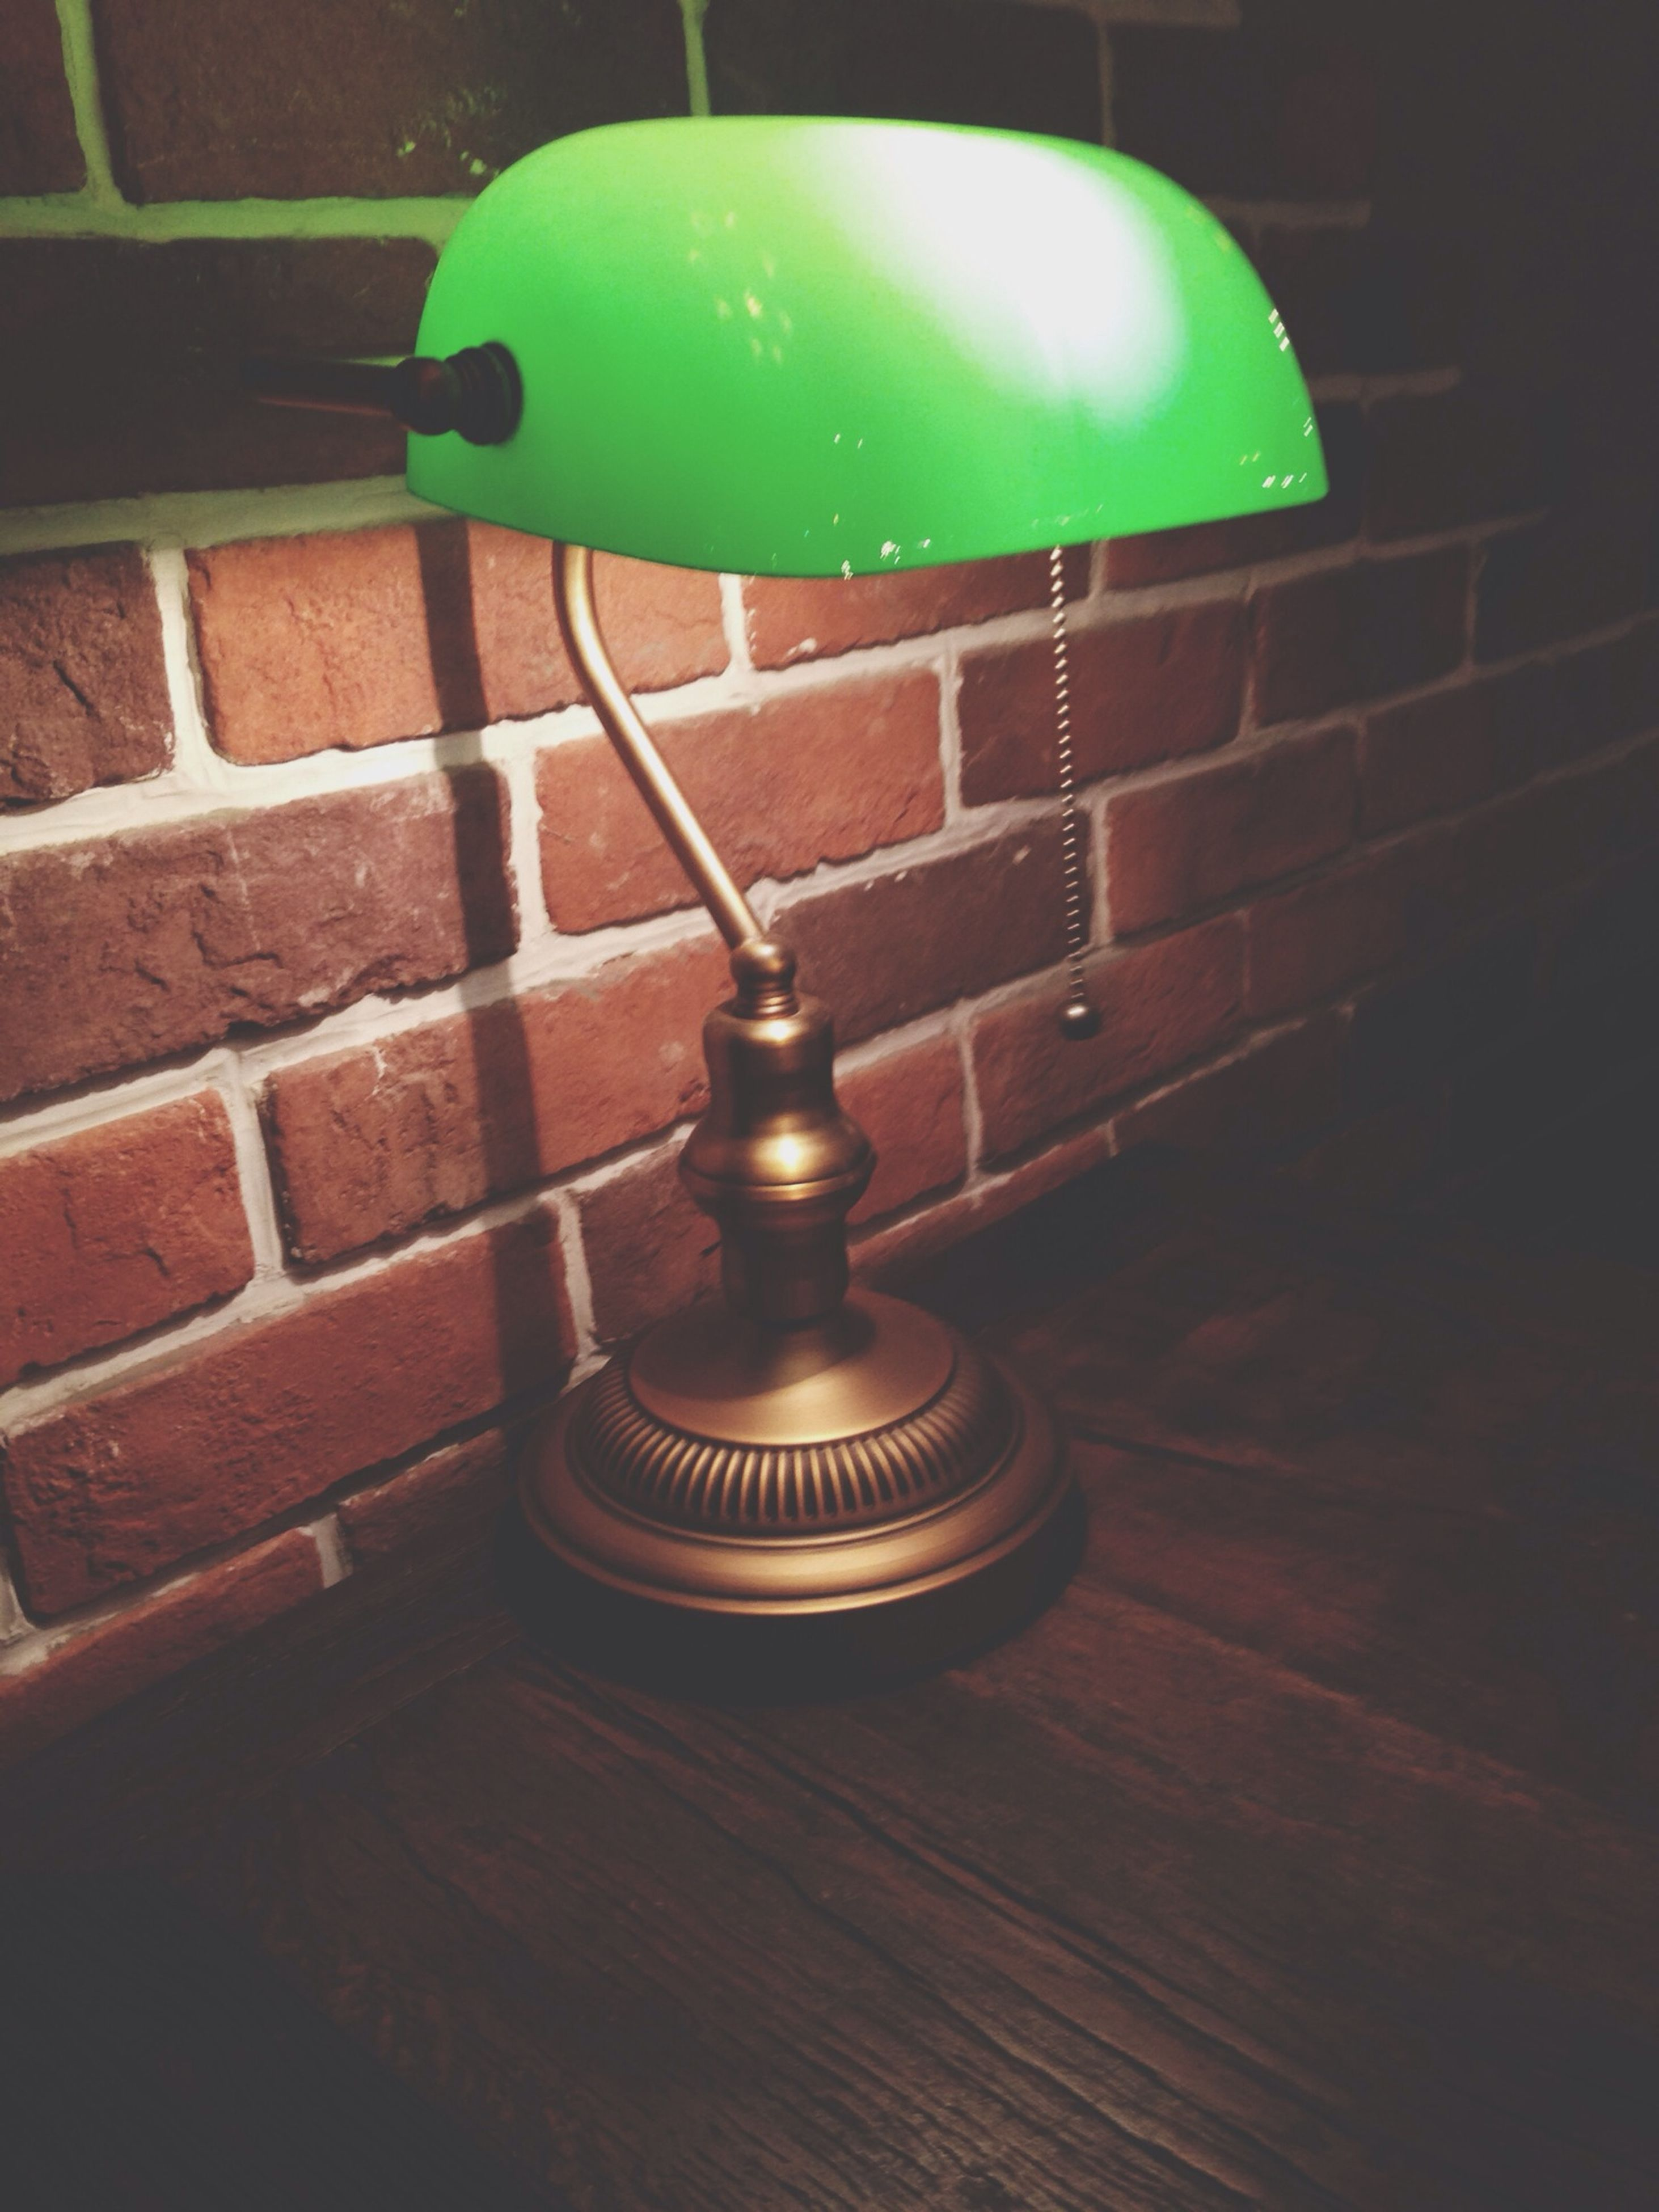 indoors, illuminated, close-up, lighting equipment, wood - material, table, no people, night, wall - building feature, still life, metal, high angle view, circle, red, pattern, green color, communication, single object, text, wooden